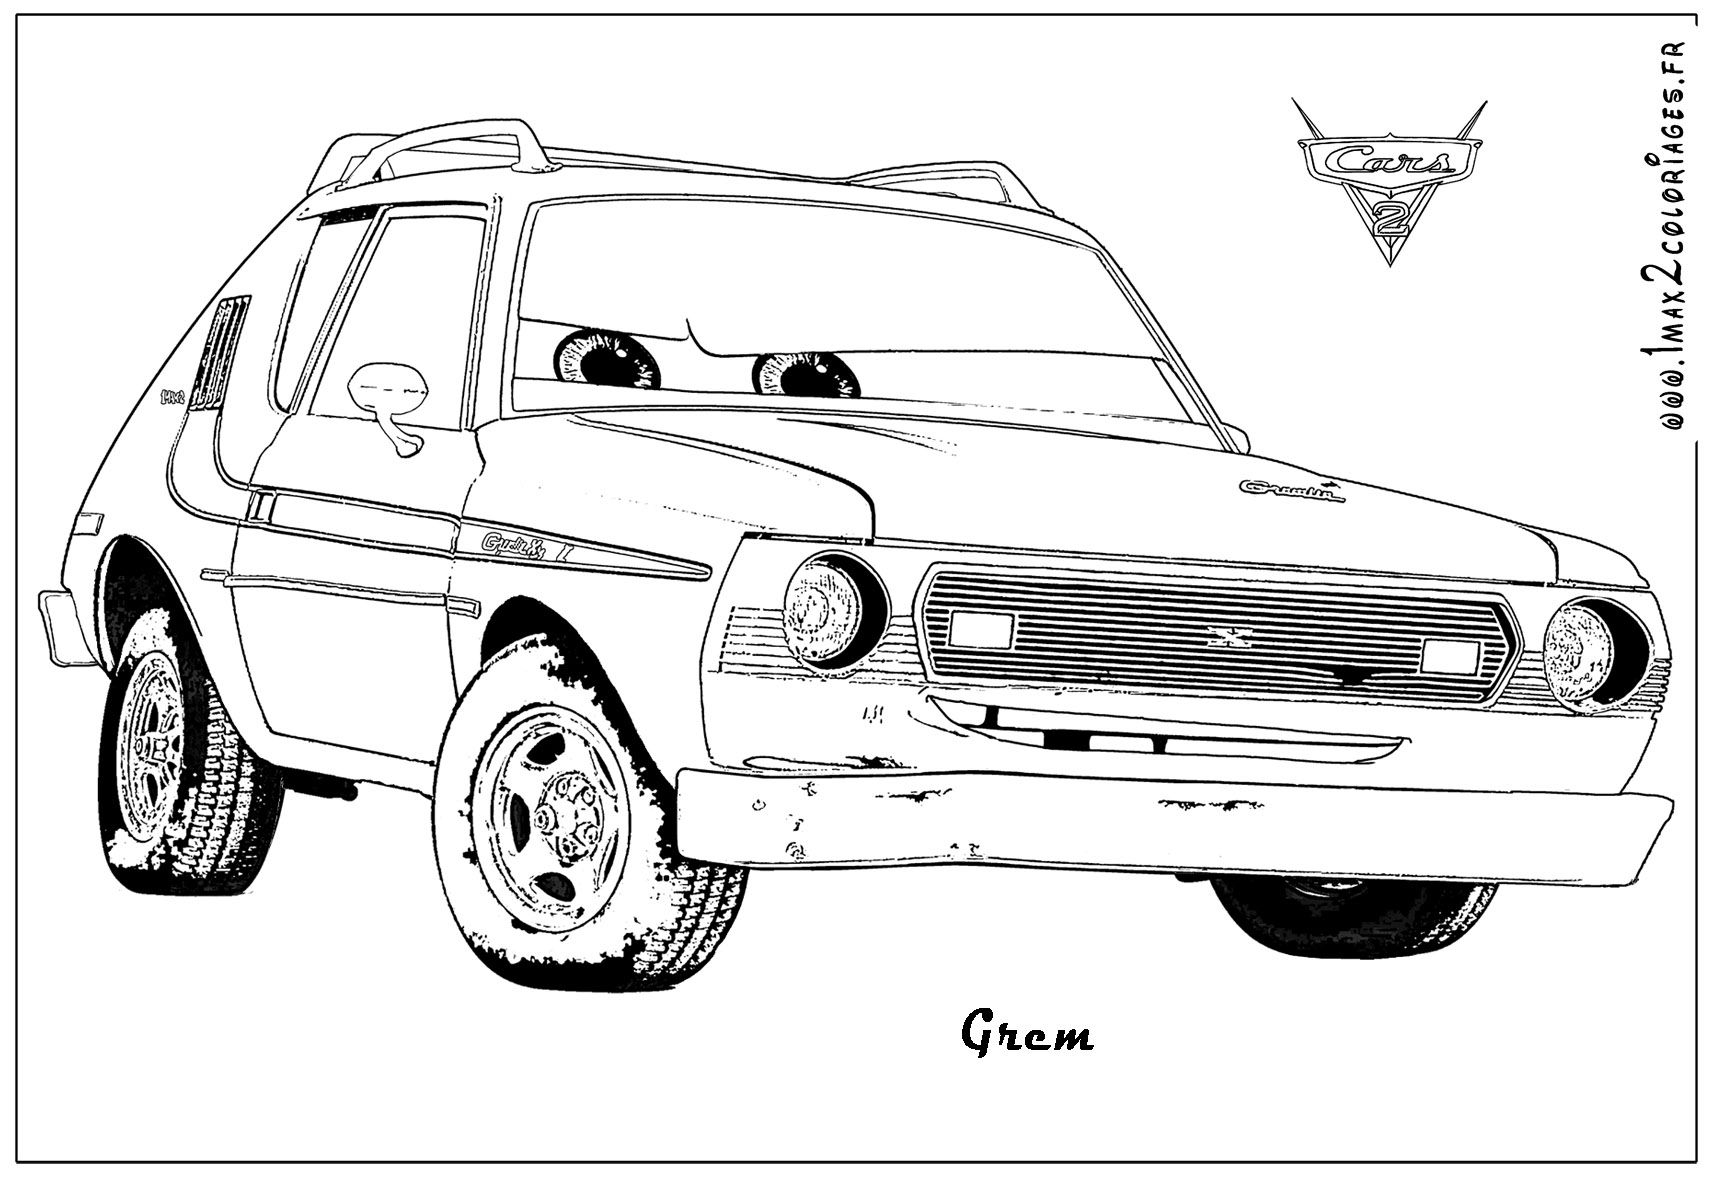 Cars 2 Printable Coloring Pages Grem Cars 2 Colouring Download Of Cars 2 Coloring Pages with Cars 2 Coloring Pages with Cars 2 Gallery